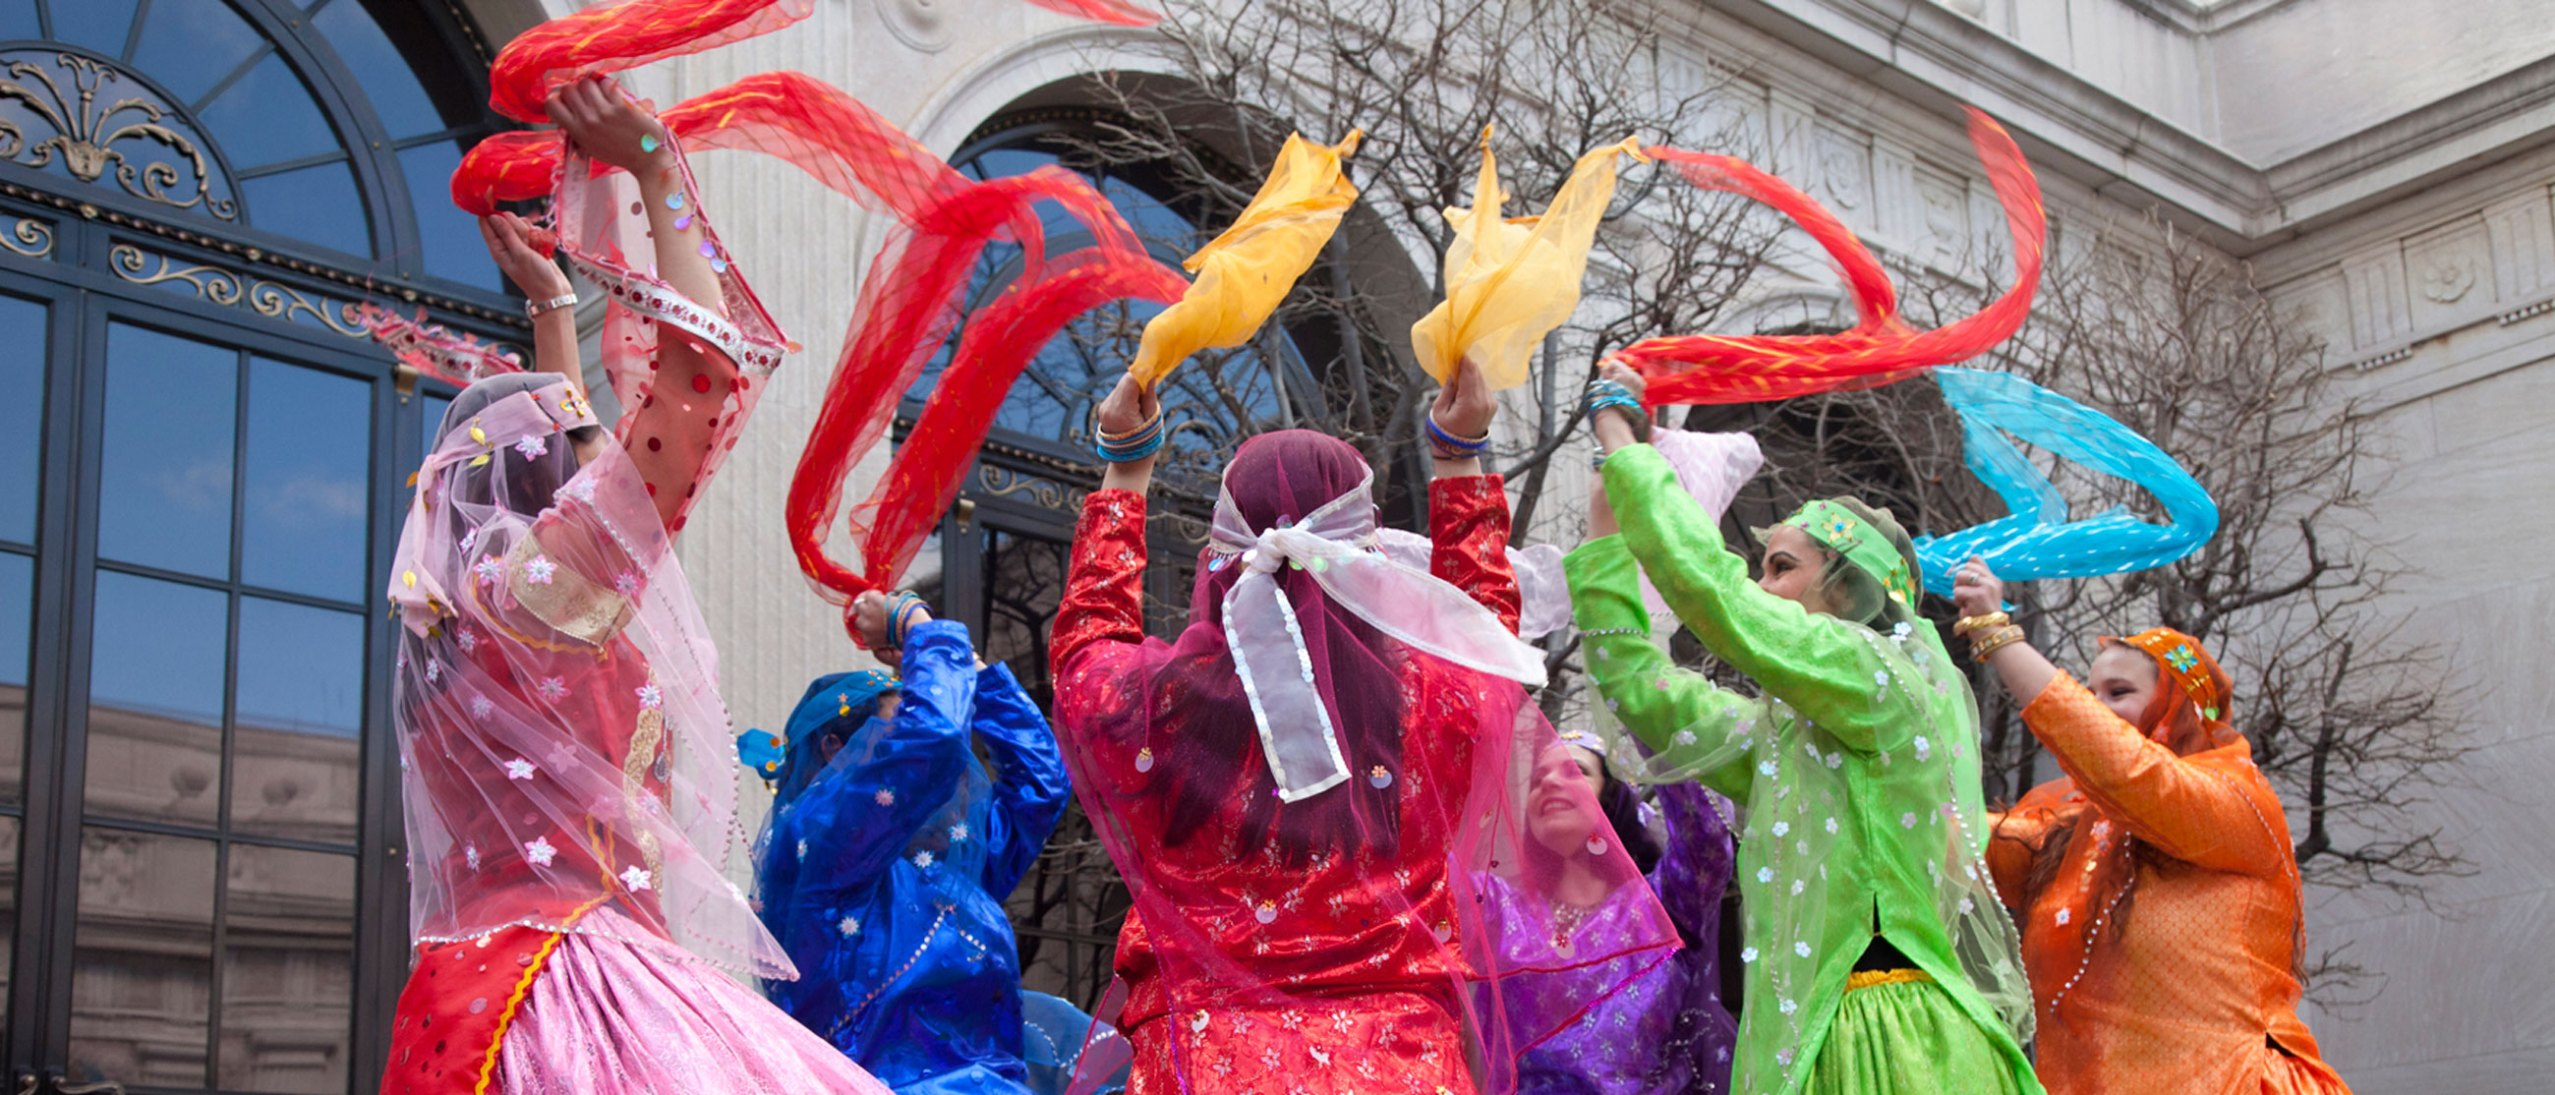 Dancers wave colored scarves at a Freer|Sackler Nowruz celebration.